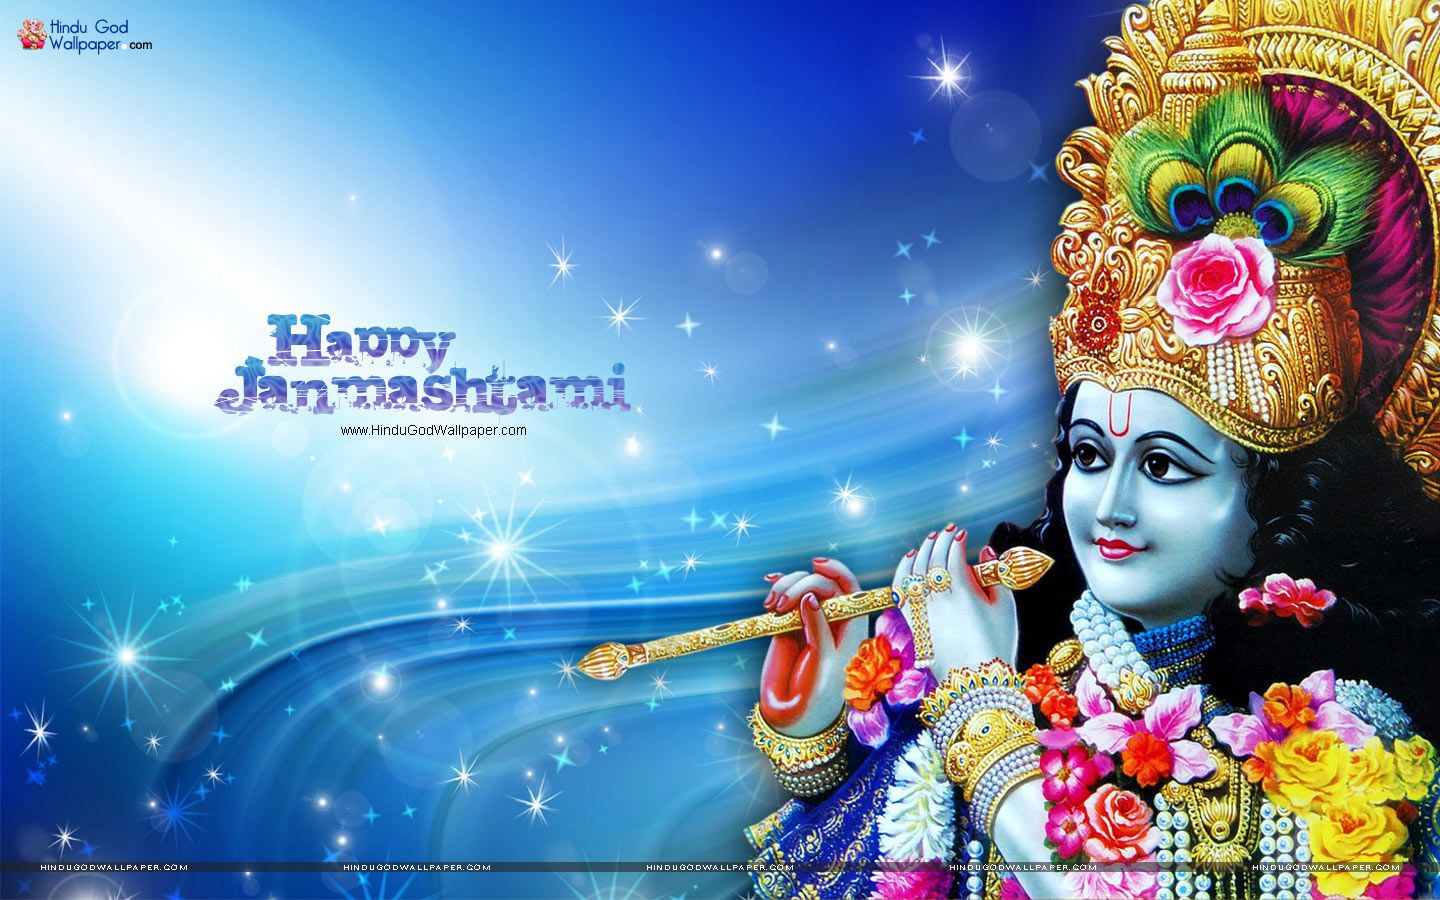 Free Shri Krishna Janmashtami Wallpaper At Your Desktop And Full Size Hd Happy Janmashtami Wallpapers Pictu Janmashtami Wallpapers Krishna Janmashtami Krishna